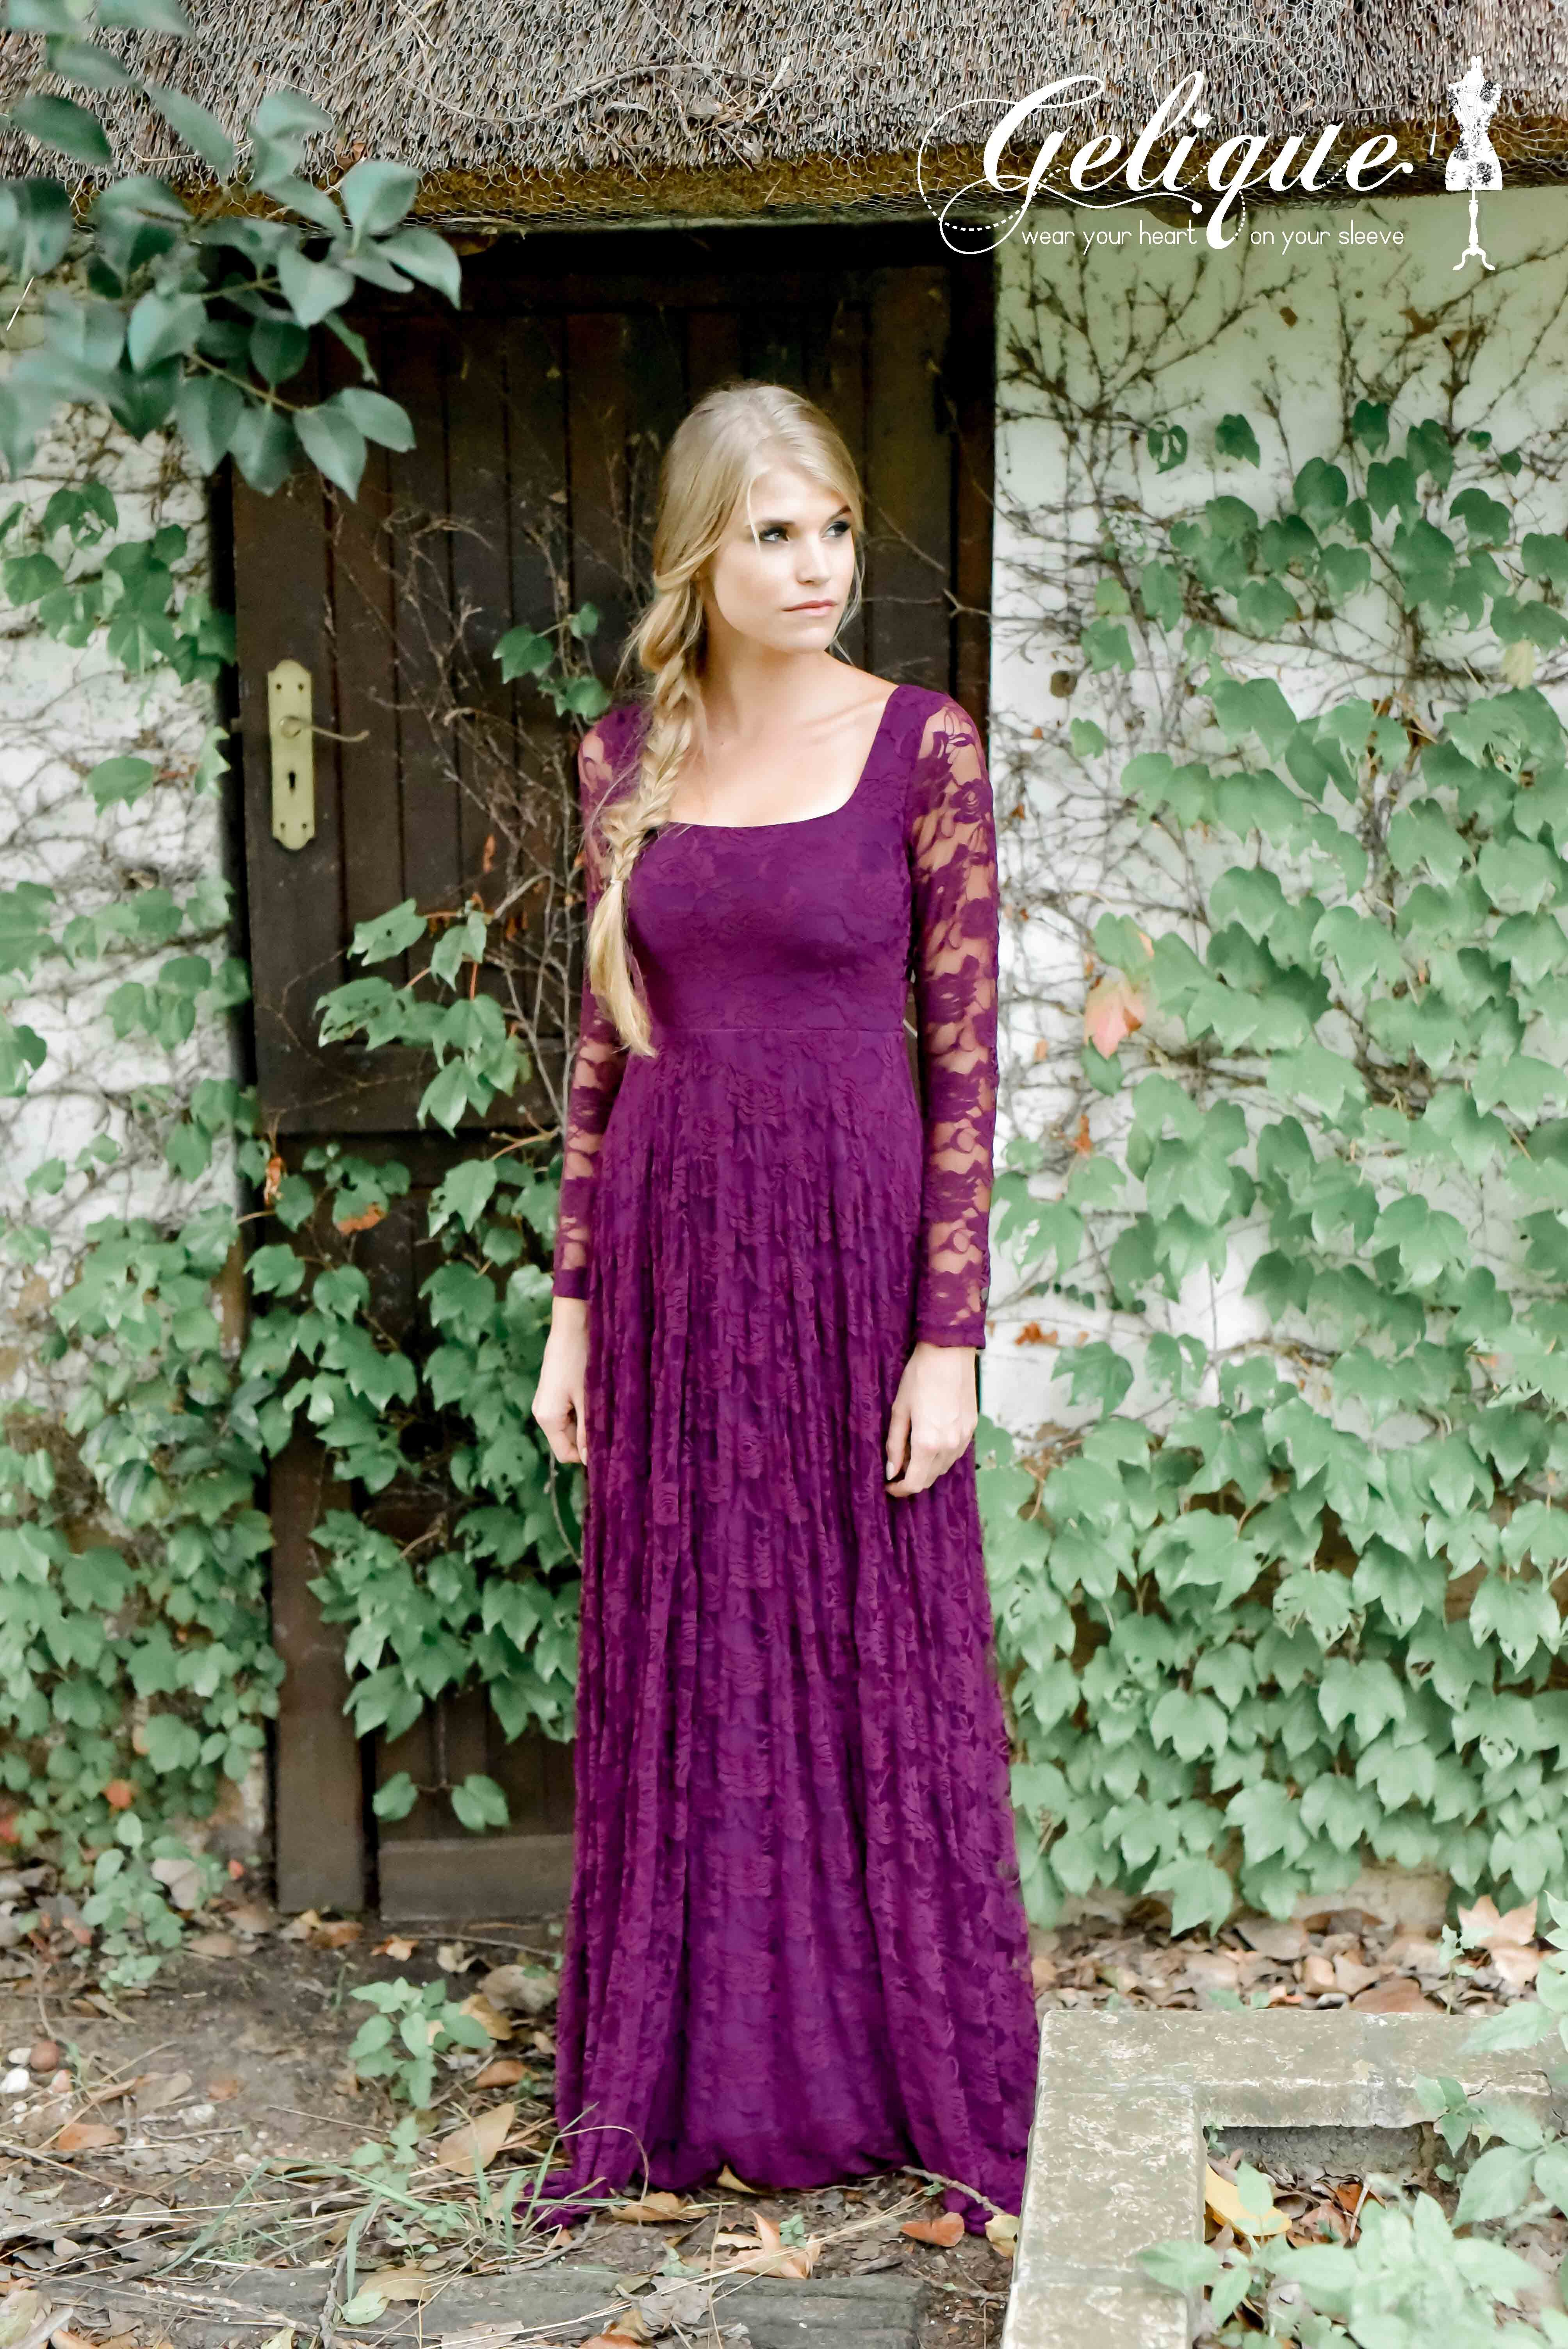 Lace dress with cape  Alice dress in Full Lace  Gelique Alice Dress  Pinterest  Alice